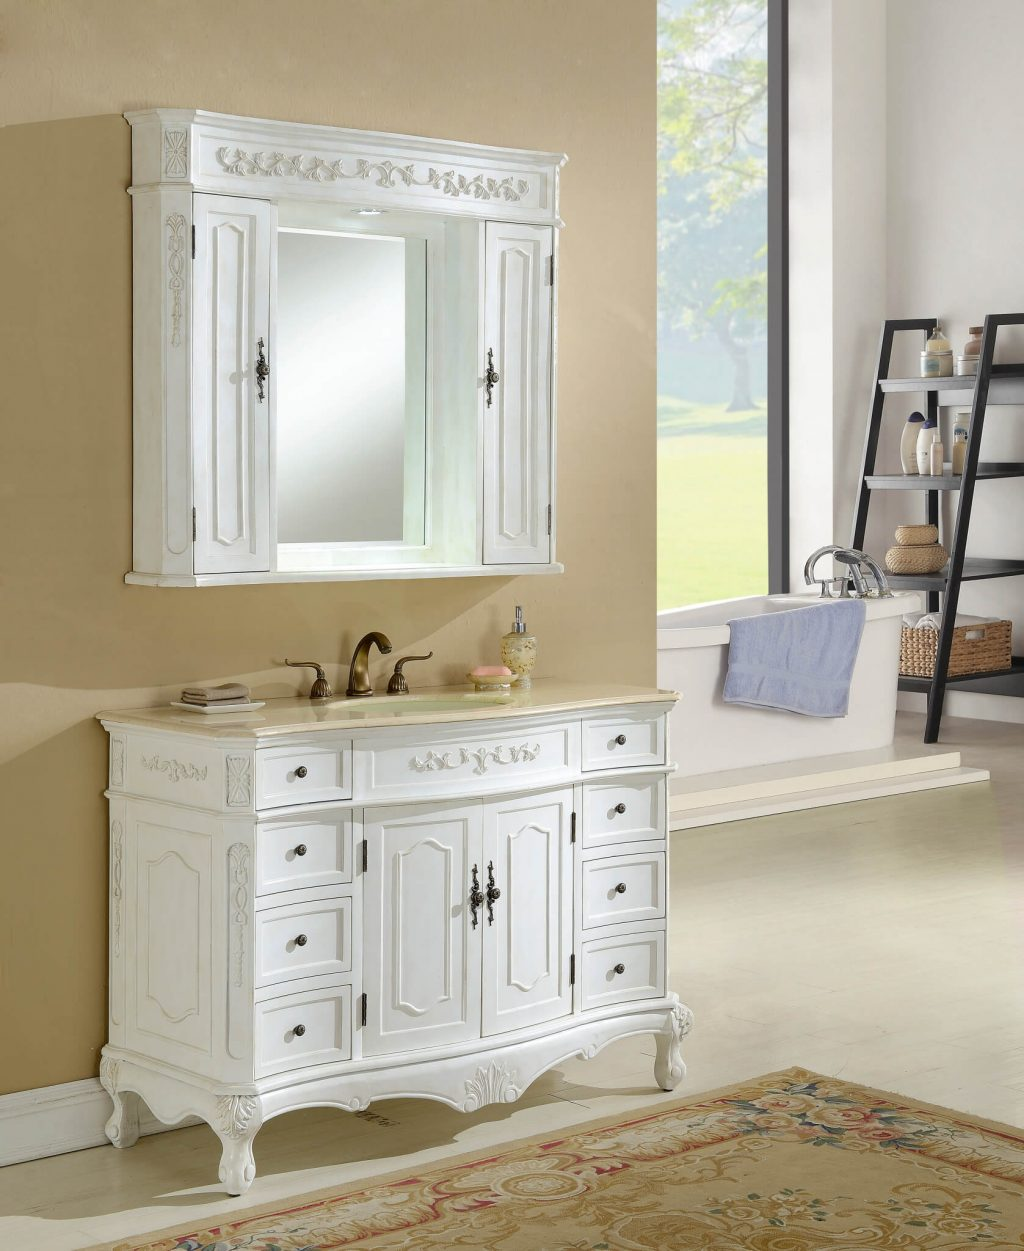 48 Kensington Antique White Bath Vanity